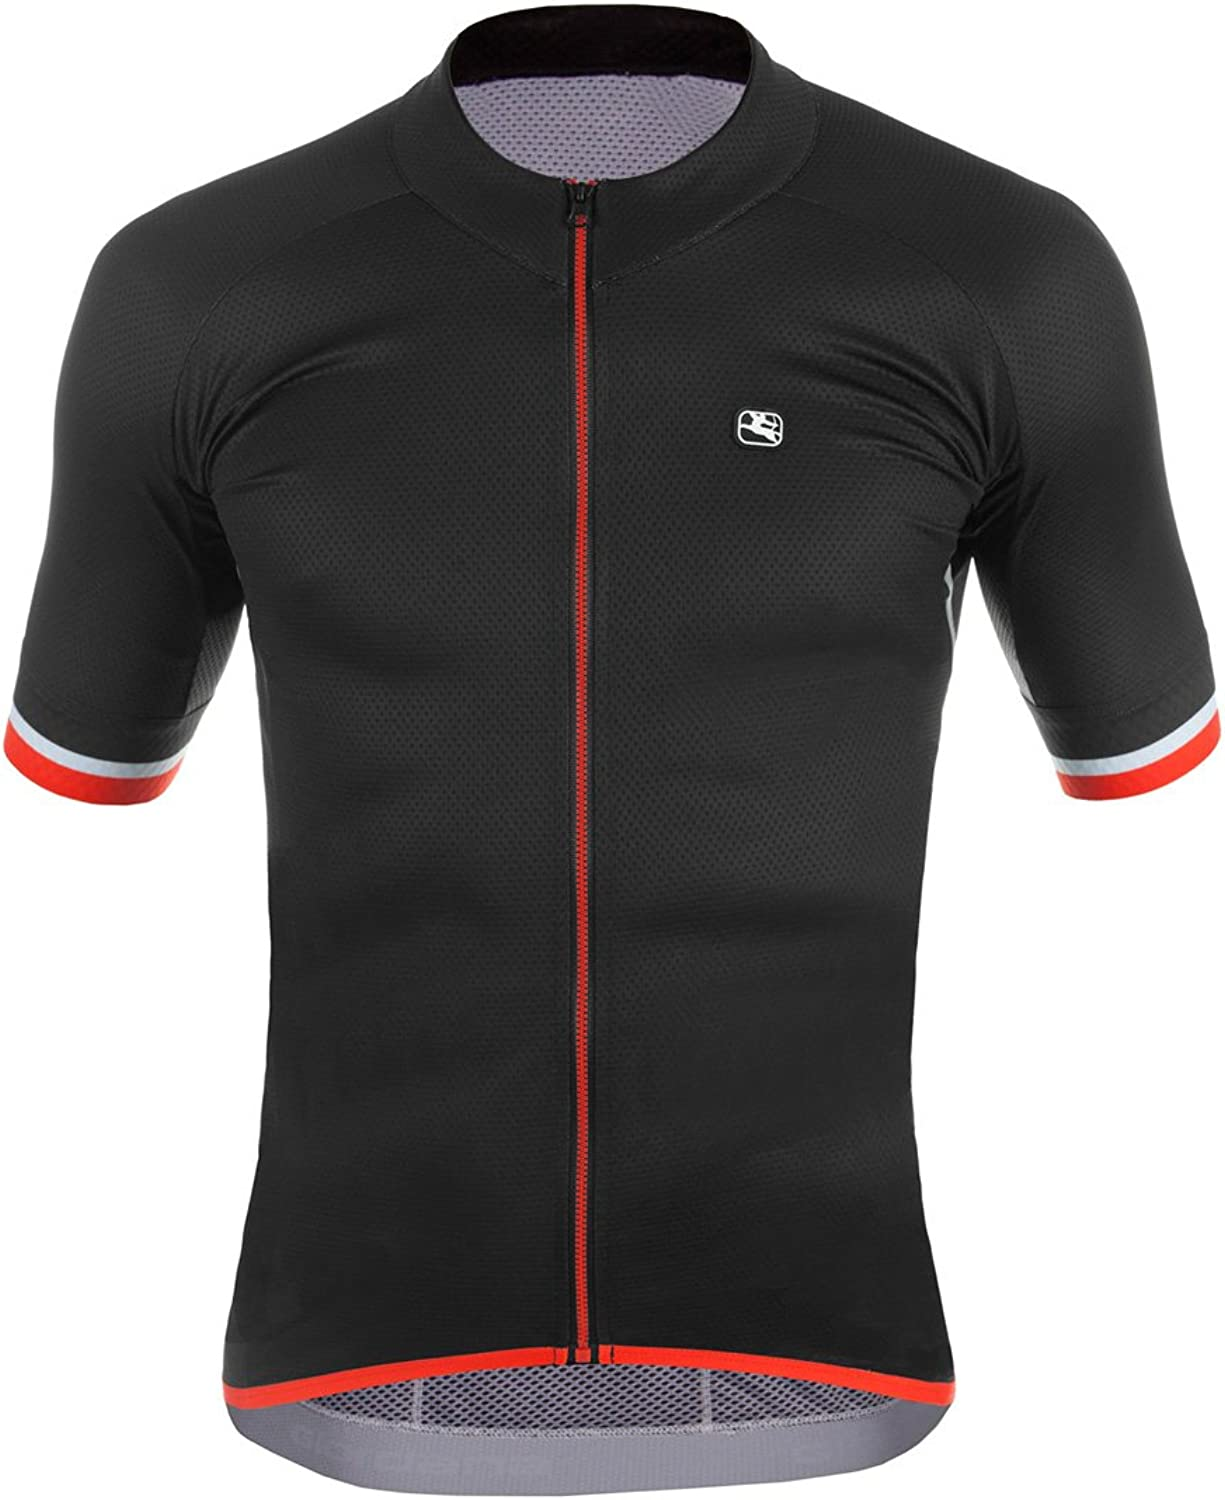 Giordana SilverLine Classic Jersey  ShortSleeve  Men's Black Red Accents M